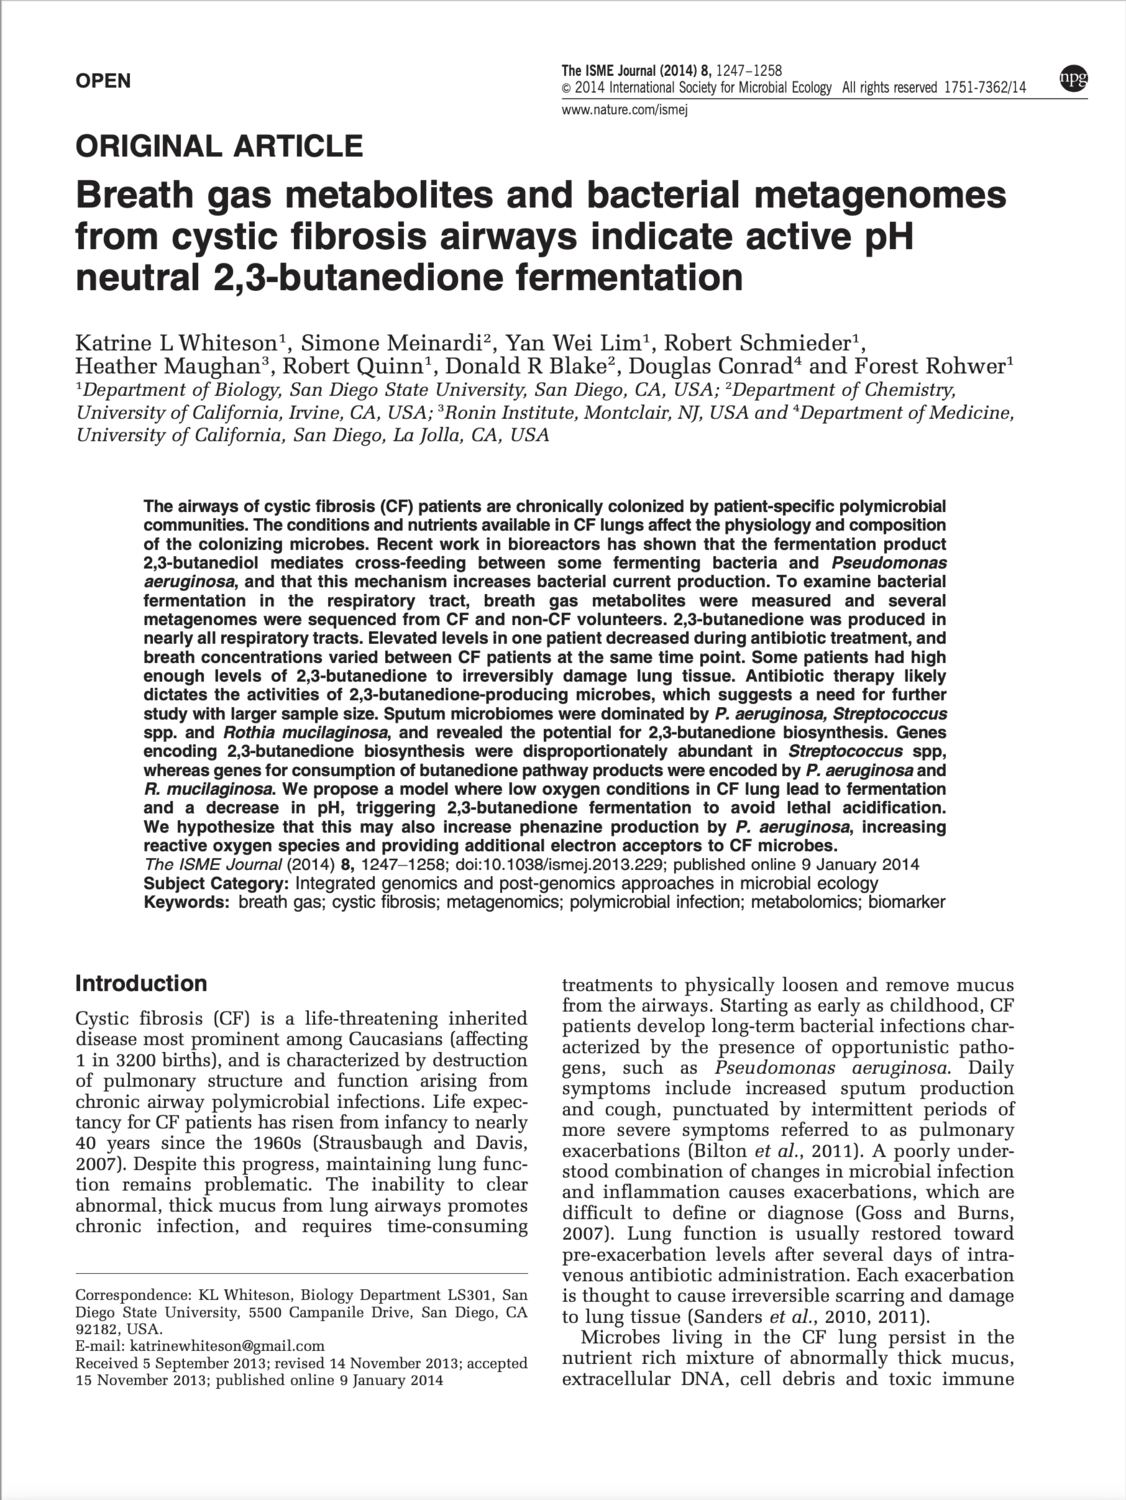 Breath gas metabolites and bacterial metagenomes from cystic fibrosis airways indicate active pH neutral 2,3-butanedione fermentation